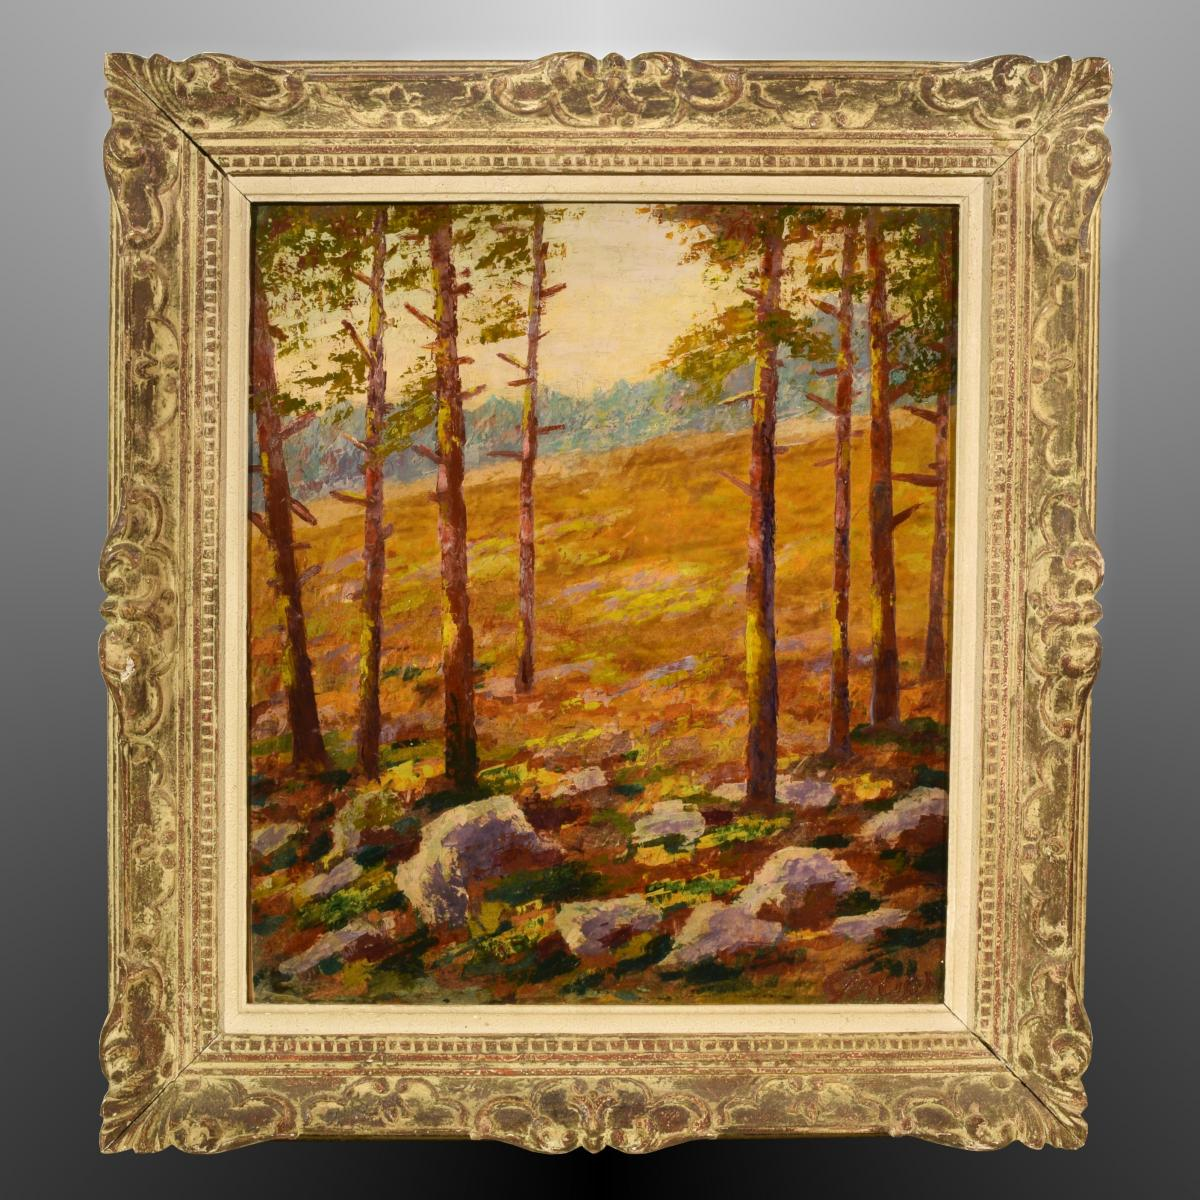 Impressionist Landscape Undergrowth Of Pines Signed Gross